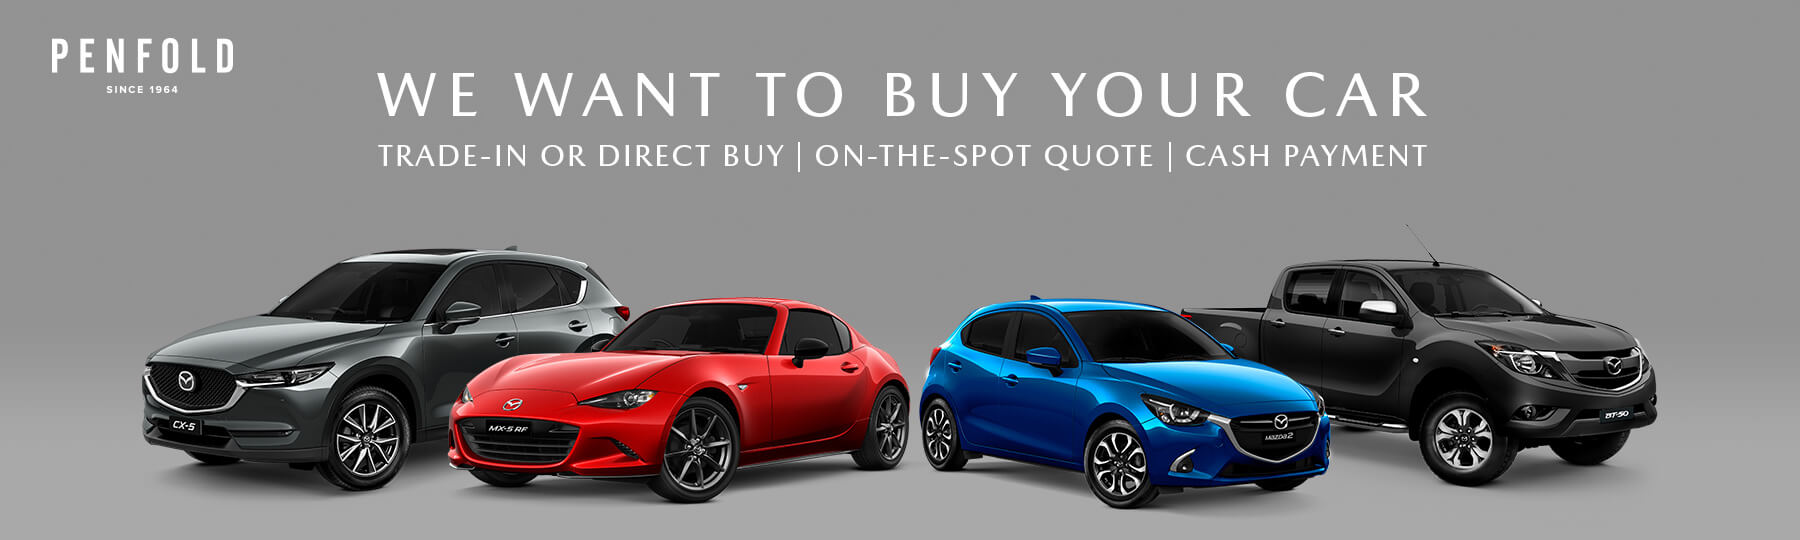 Penfold Mazda - Buy Your Car